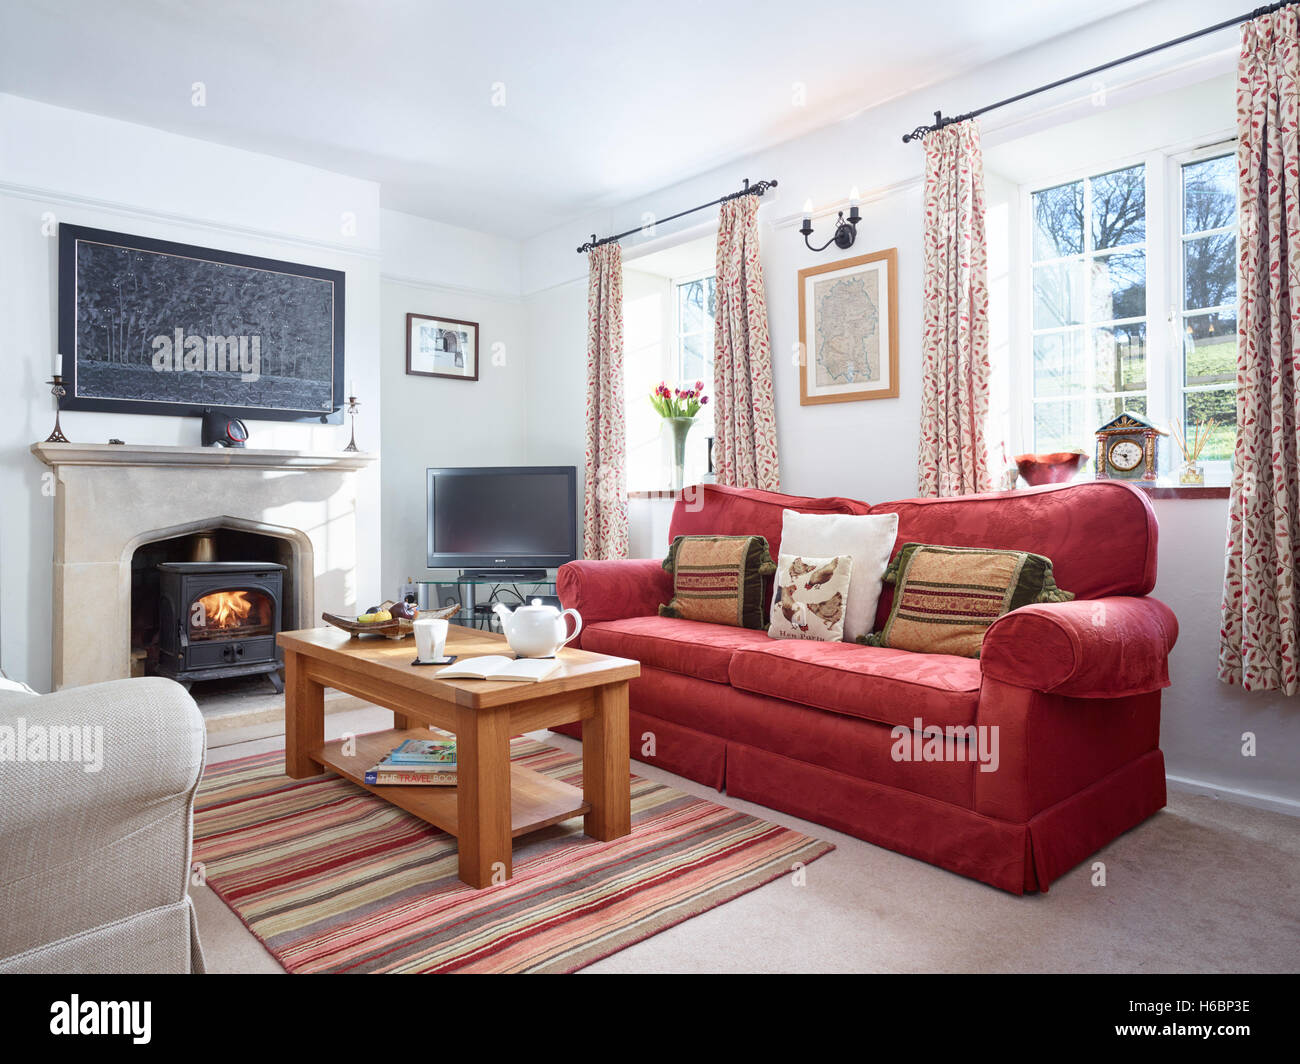 Country Home Living Room Stock Photos & Country Home Living Room ...